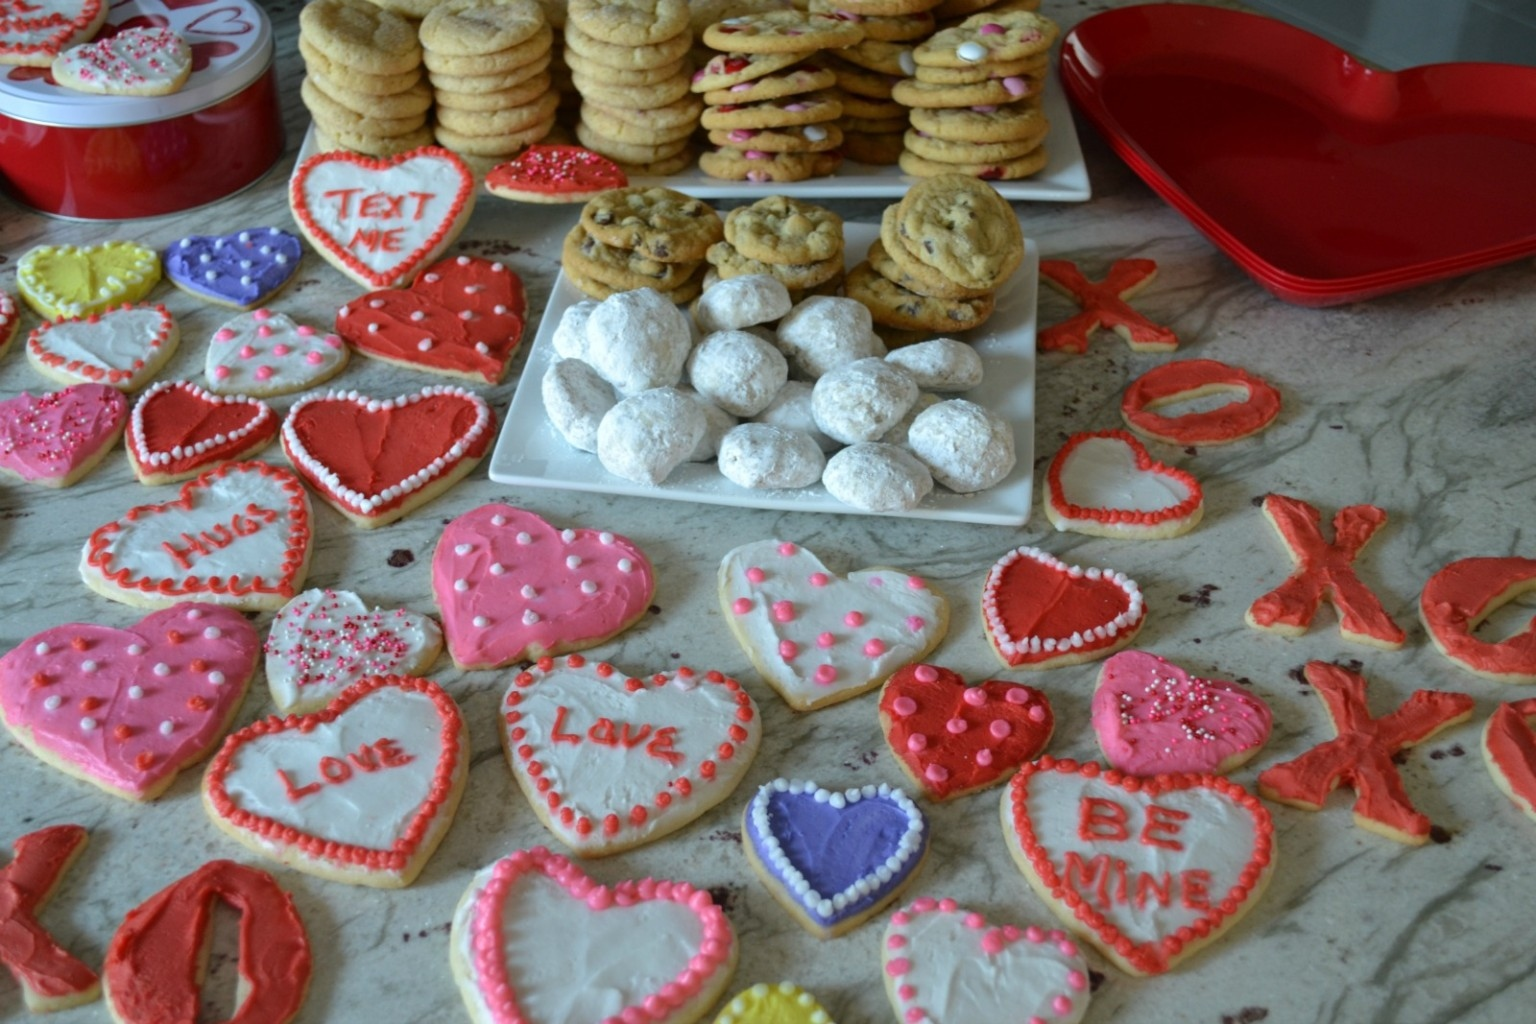 Valentine's Day's treats for the grandkids., including cookies and sweet treat bags.